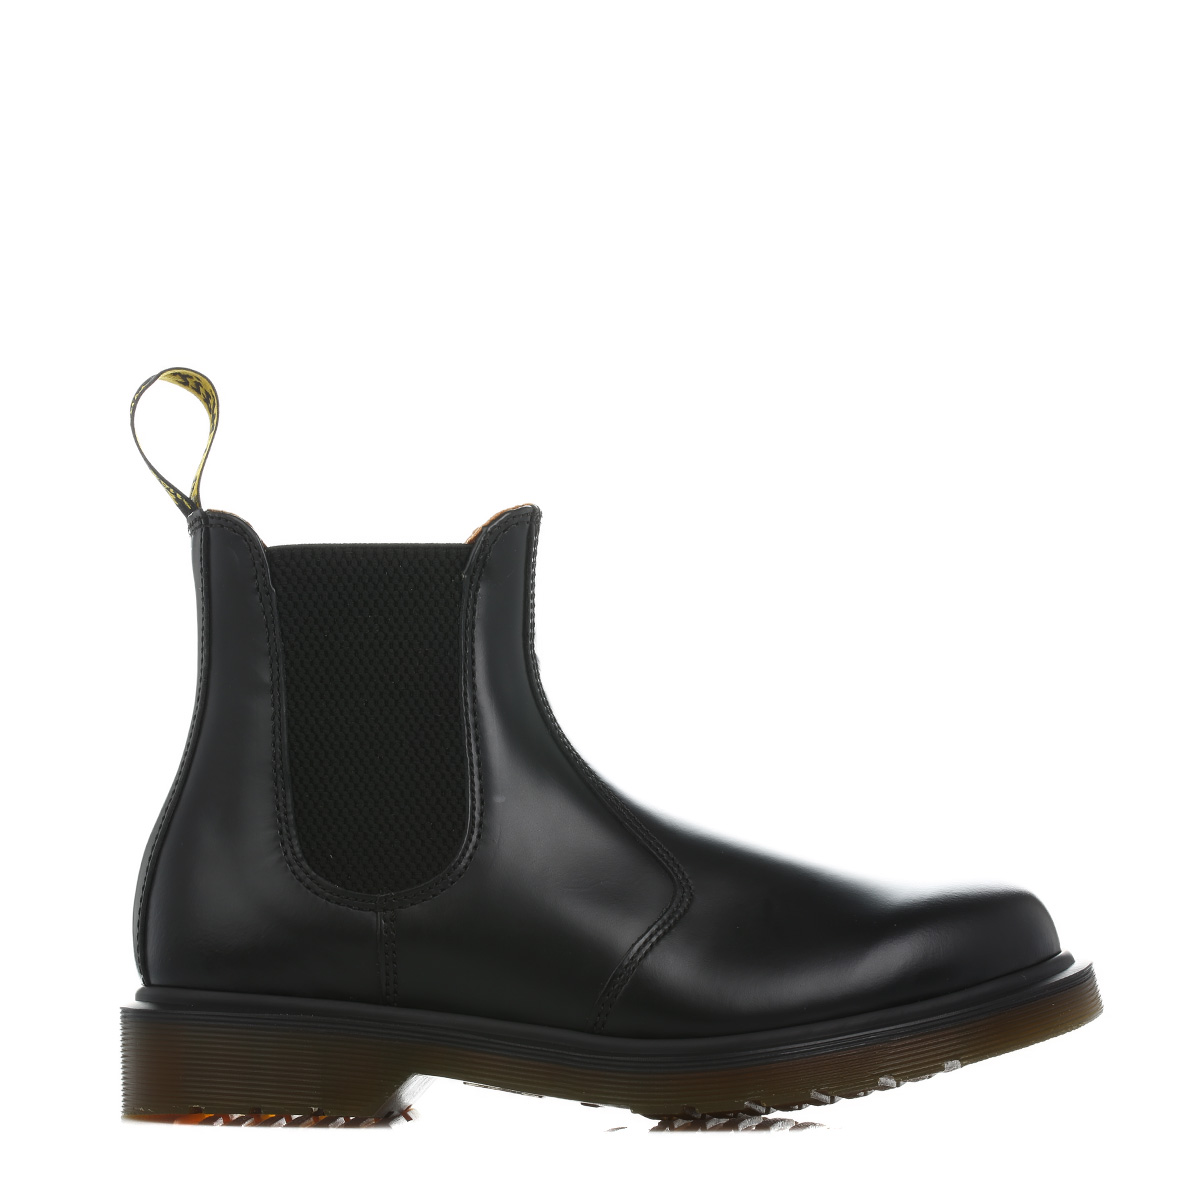 Dr-Martens-Unisex-Black-2976-Chelsea-Boots-Leather-Pull-On-Smart-Shoe-Docs